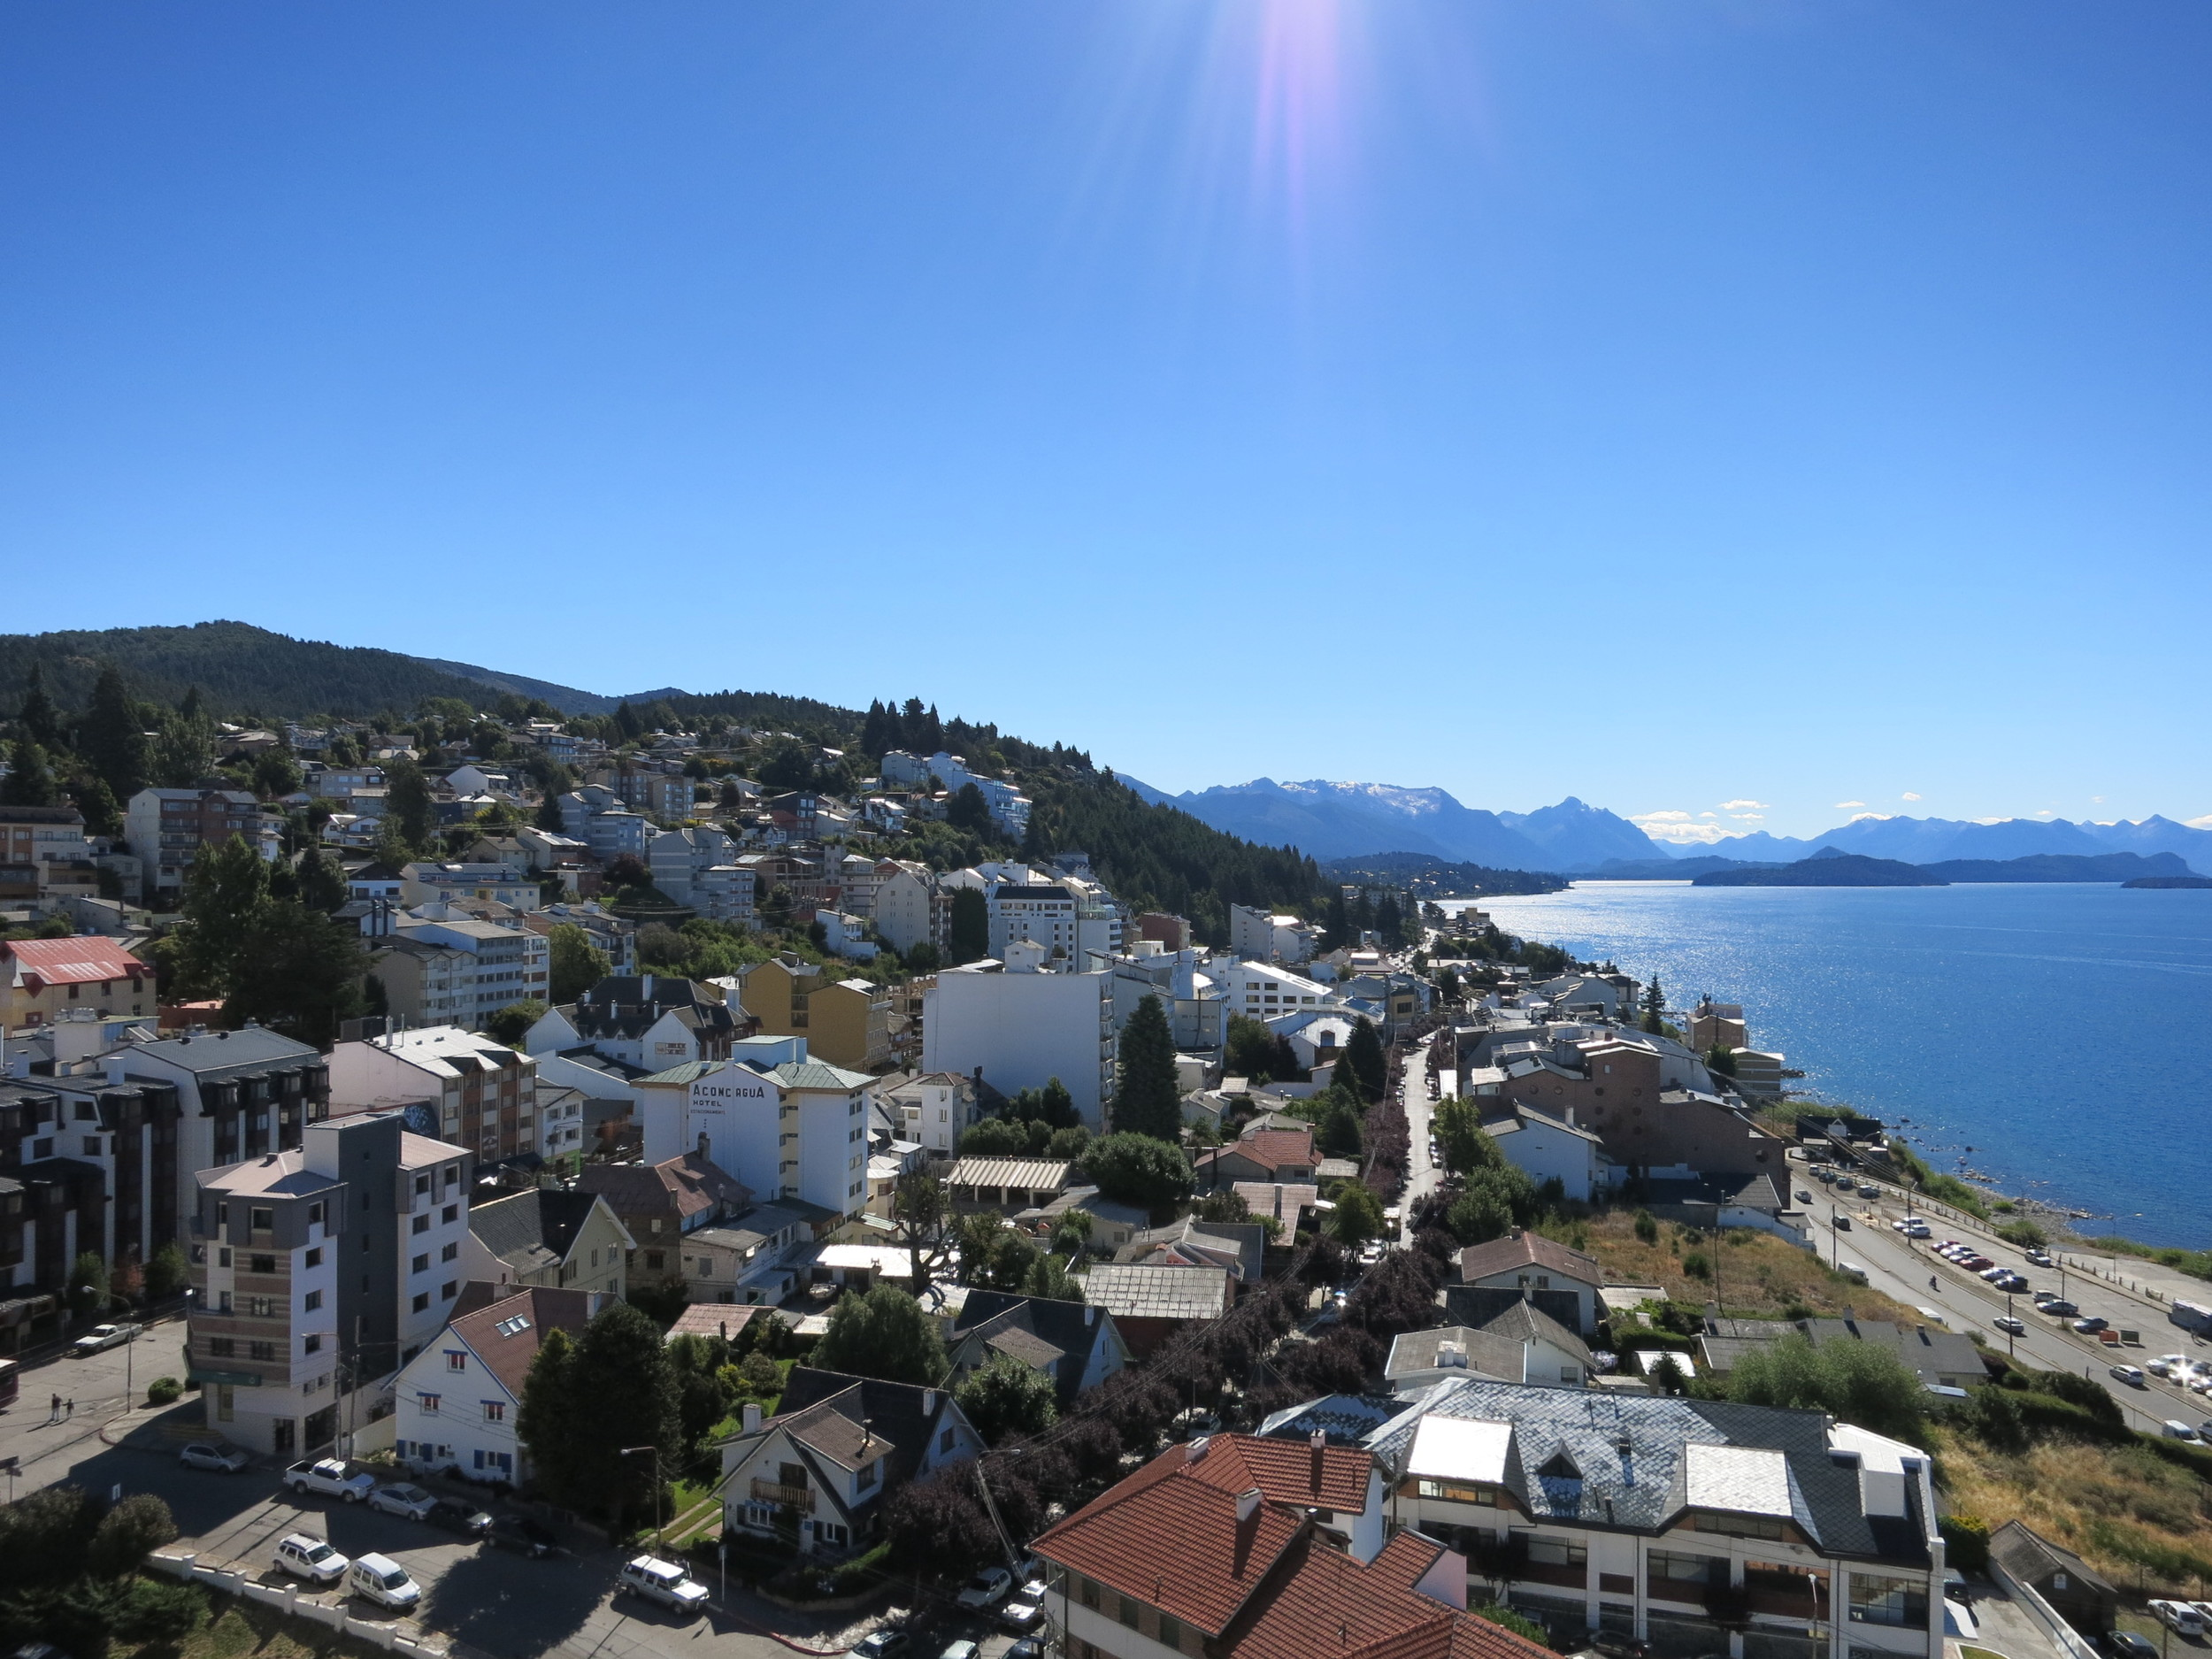 The view of Bariloche from a friend's place